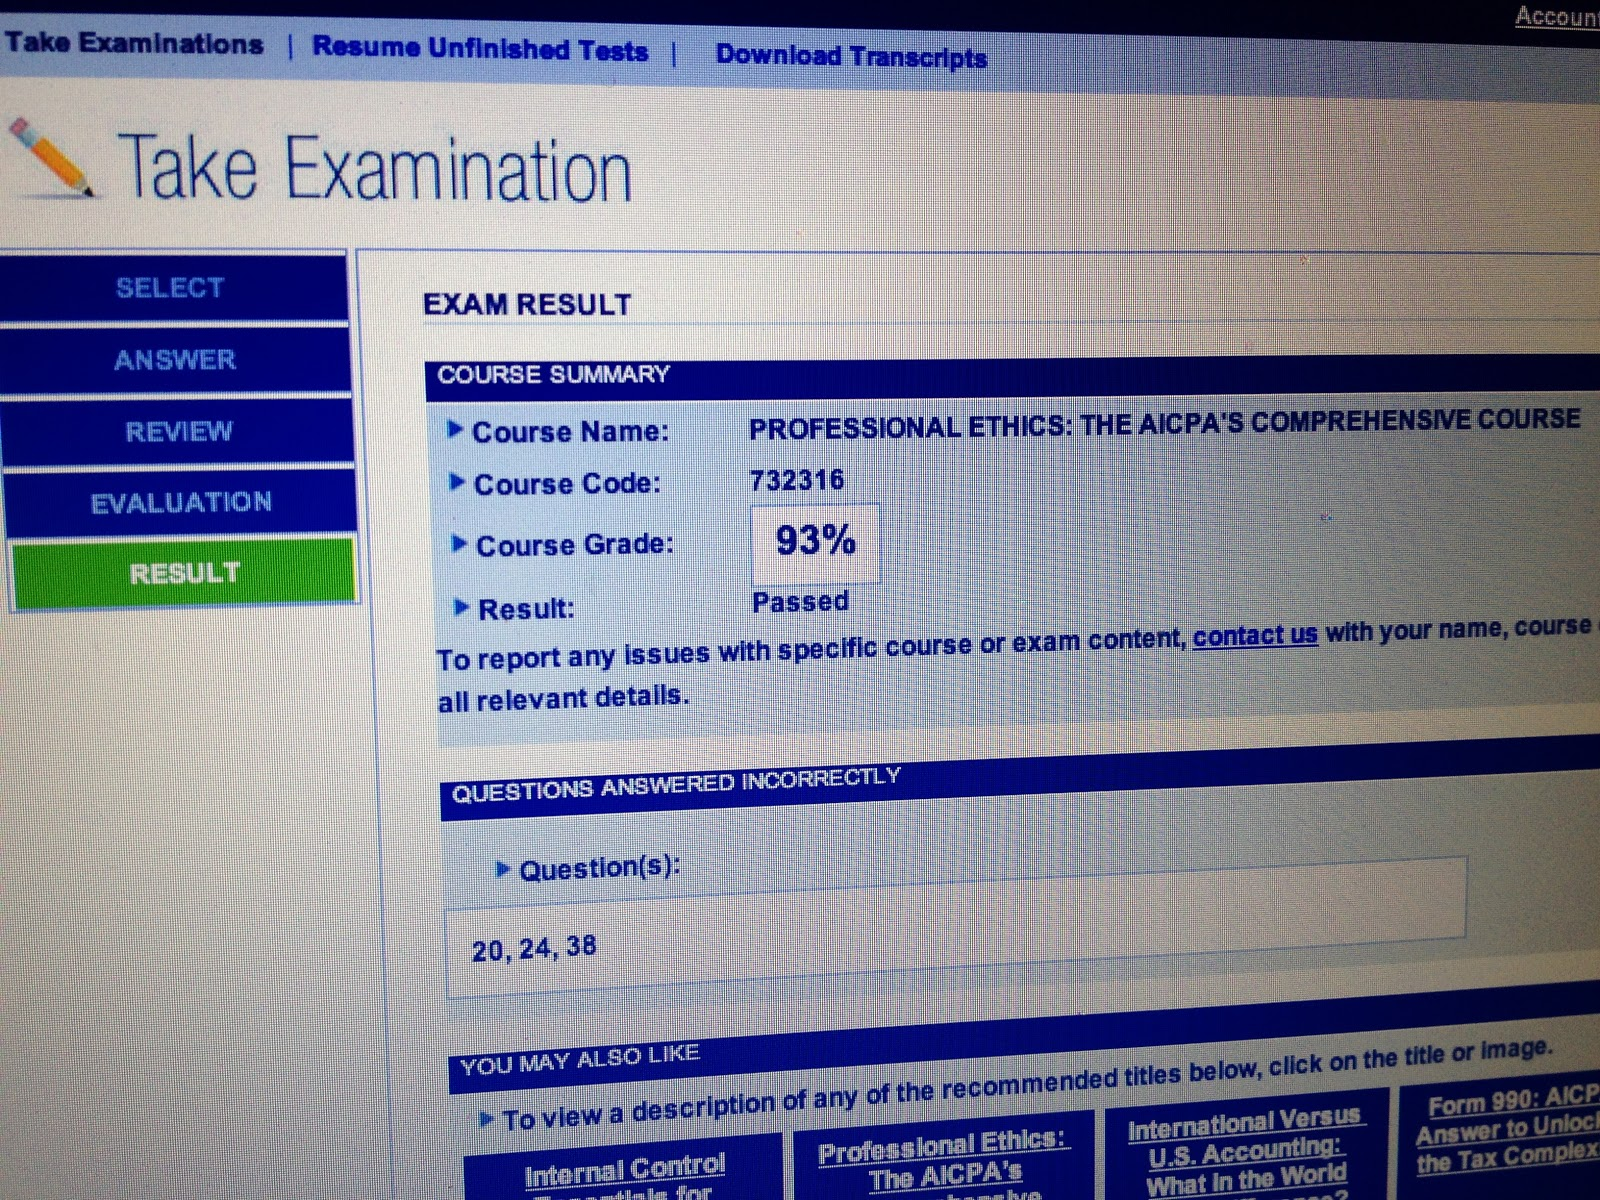 cpa exam test with answers Answer: cpa exam provided by pass-guaranteedcom offer a 100% full money back guarantee if you do not pass the cpa exam which rarely occurs the cpa test questions and answers come with a full 100 .